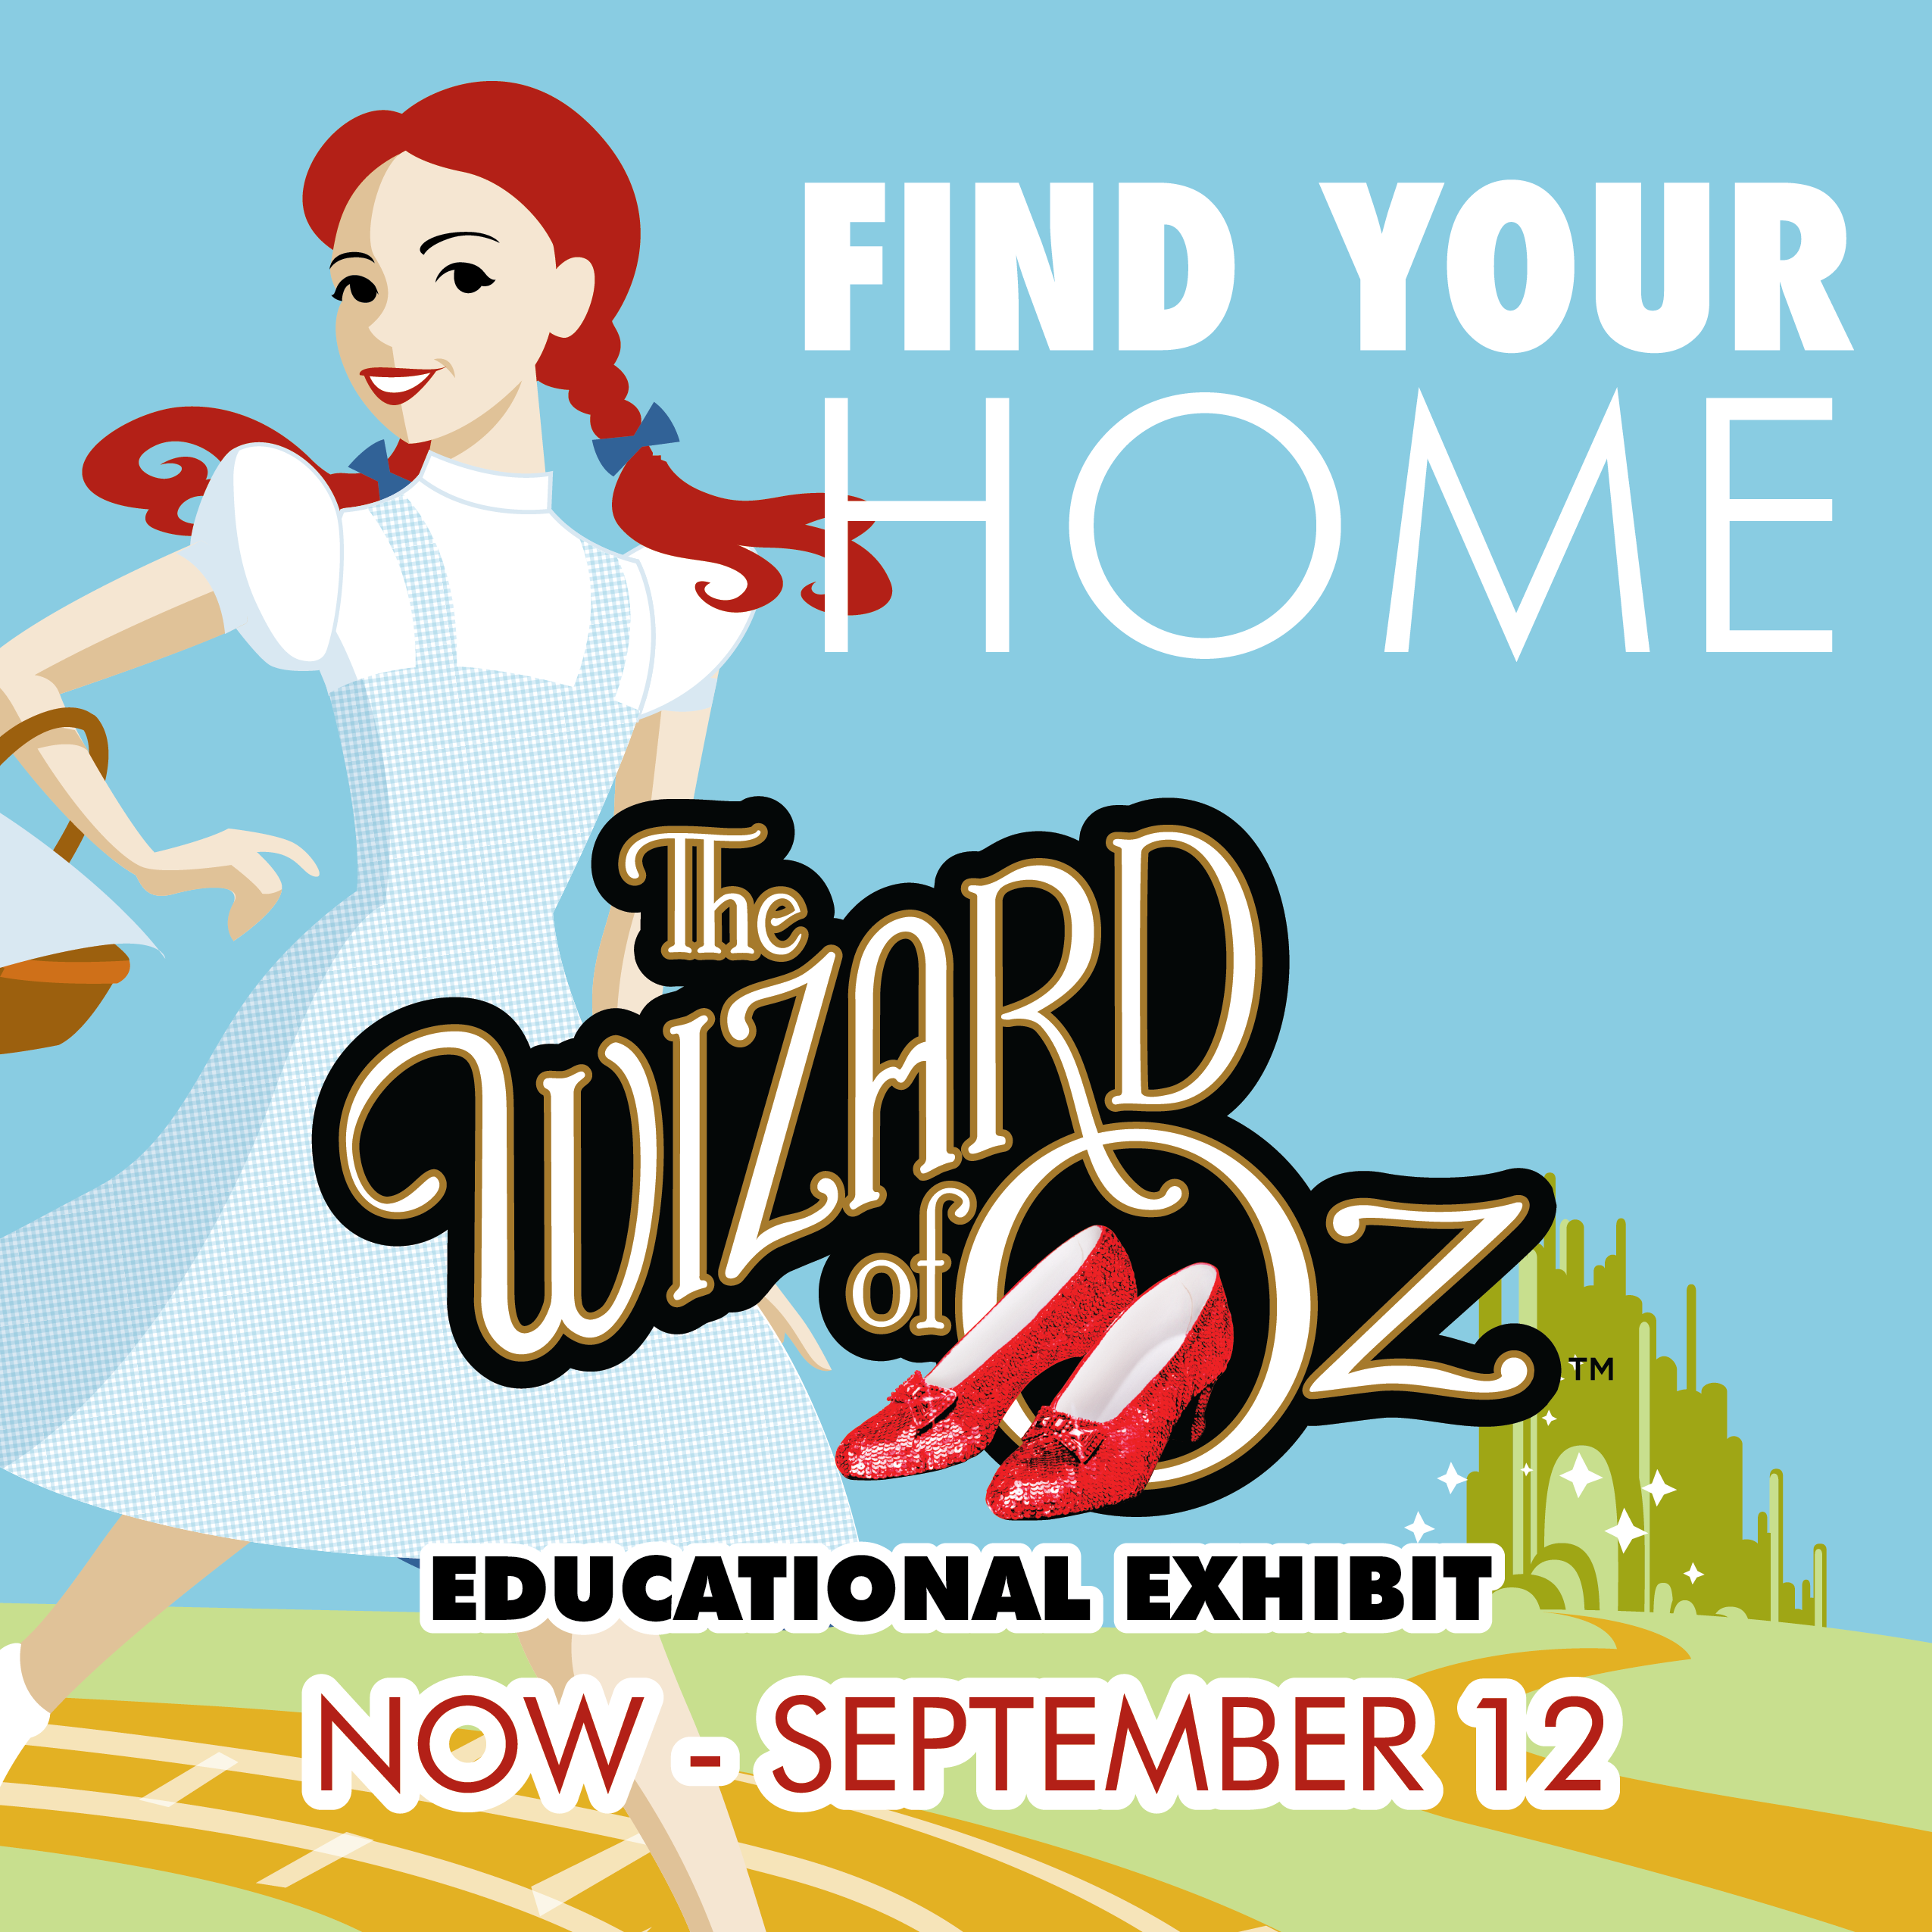 THE WIZARD OF OZ™ Educational Exhibit